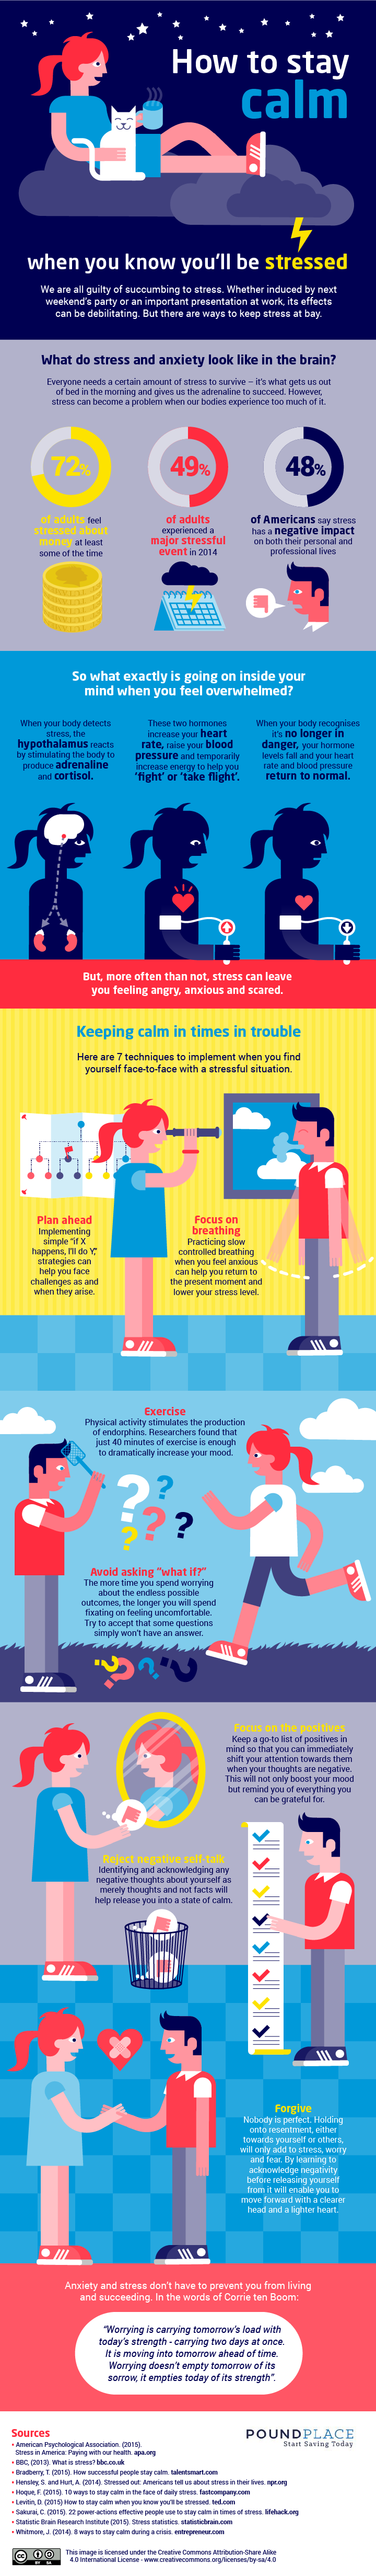 How To Stay Calm When You Know You'll Be Stressed #Infographic